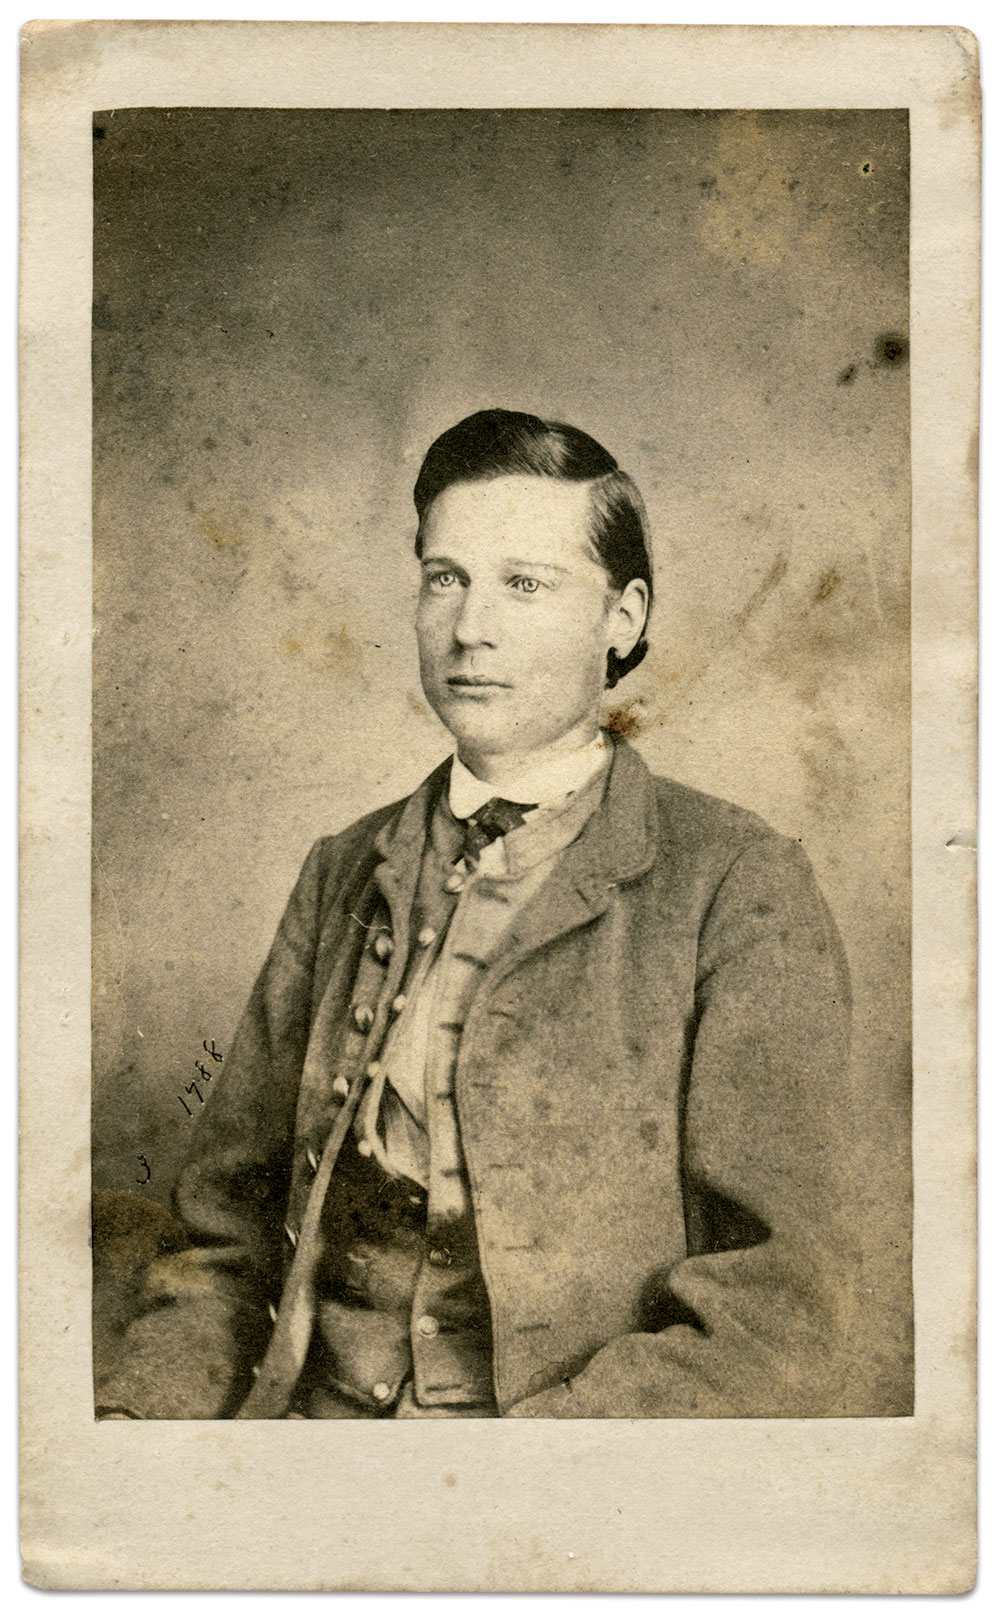 Carte de visite by Charles R. Rees & Co. of Richmond, Va. Karl Sundstrom Collection.